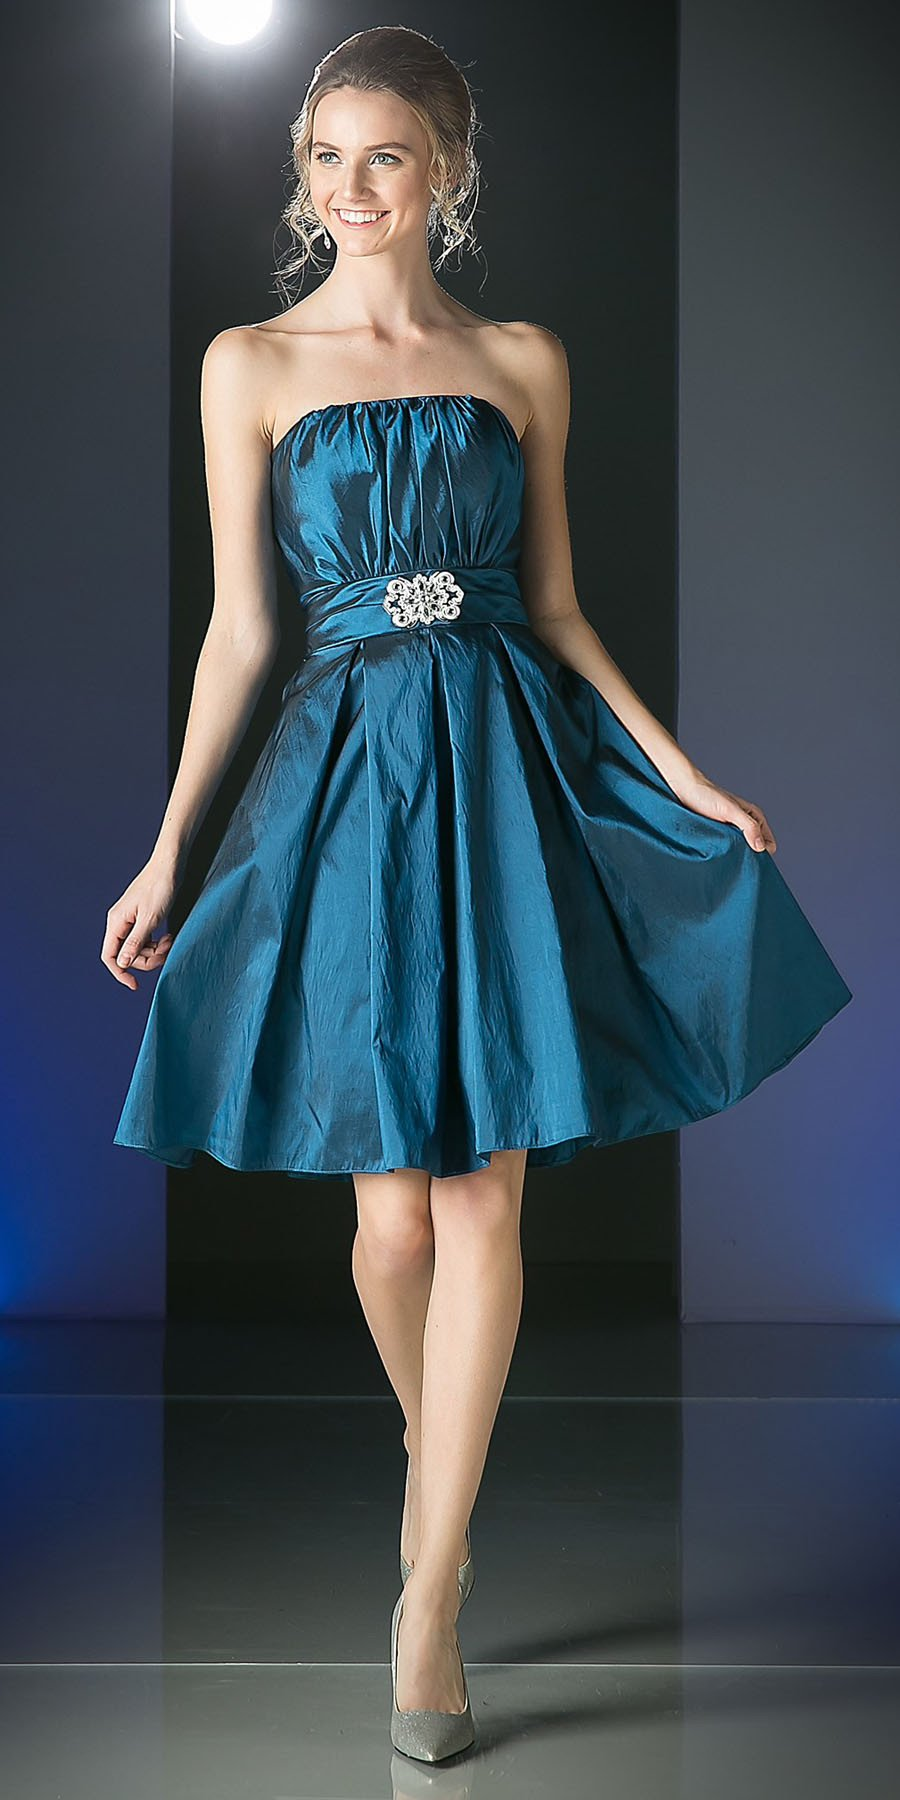 CLEARANCE - Knee Length Teal Blue Dress Strapless Taffeta Jewel ...